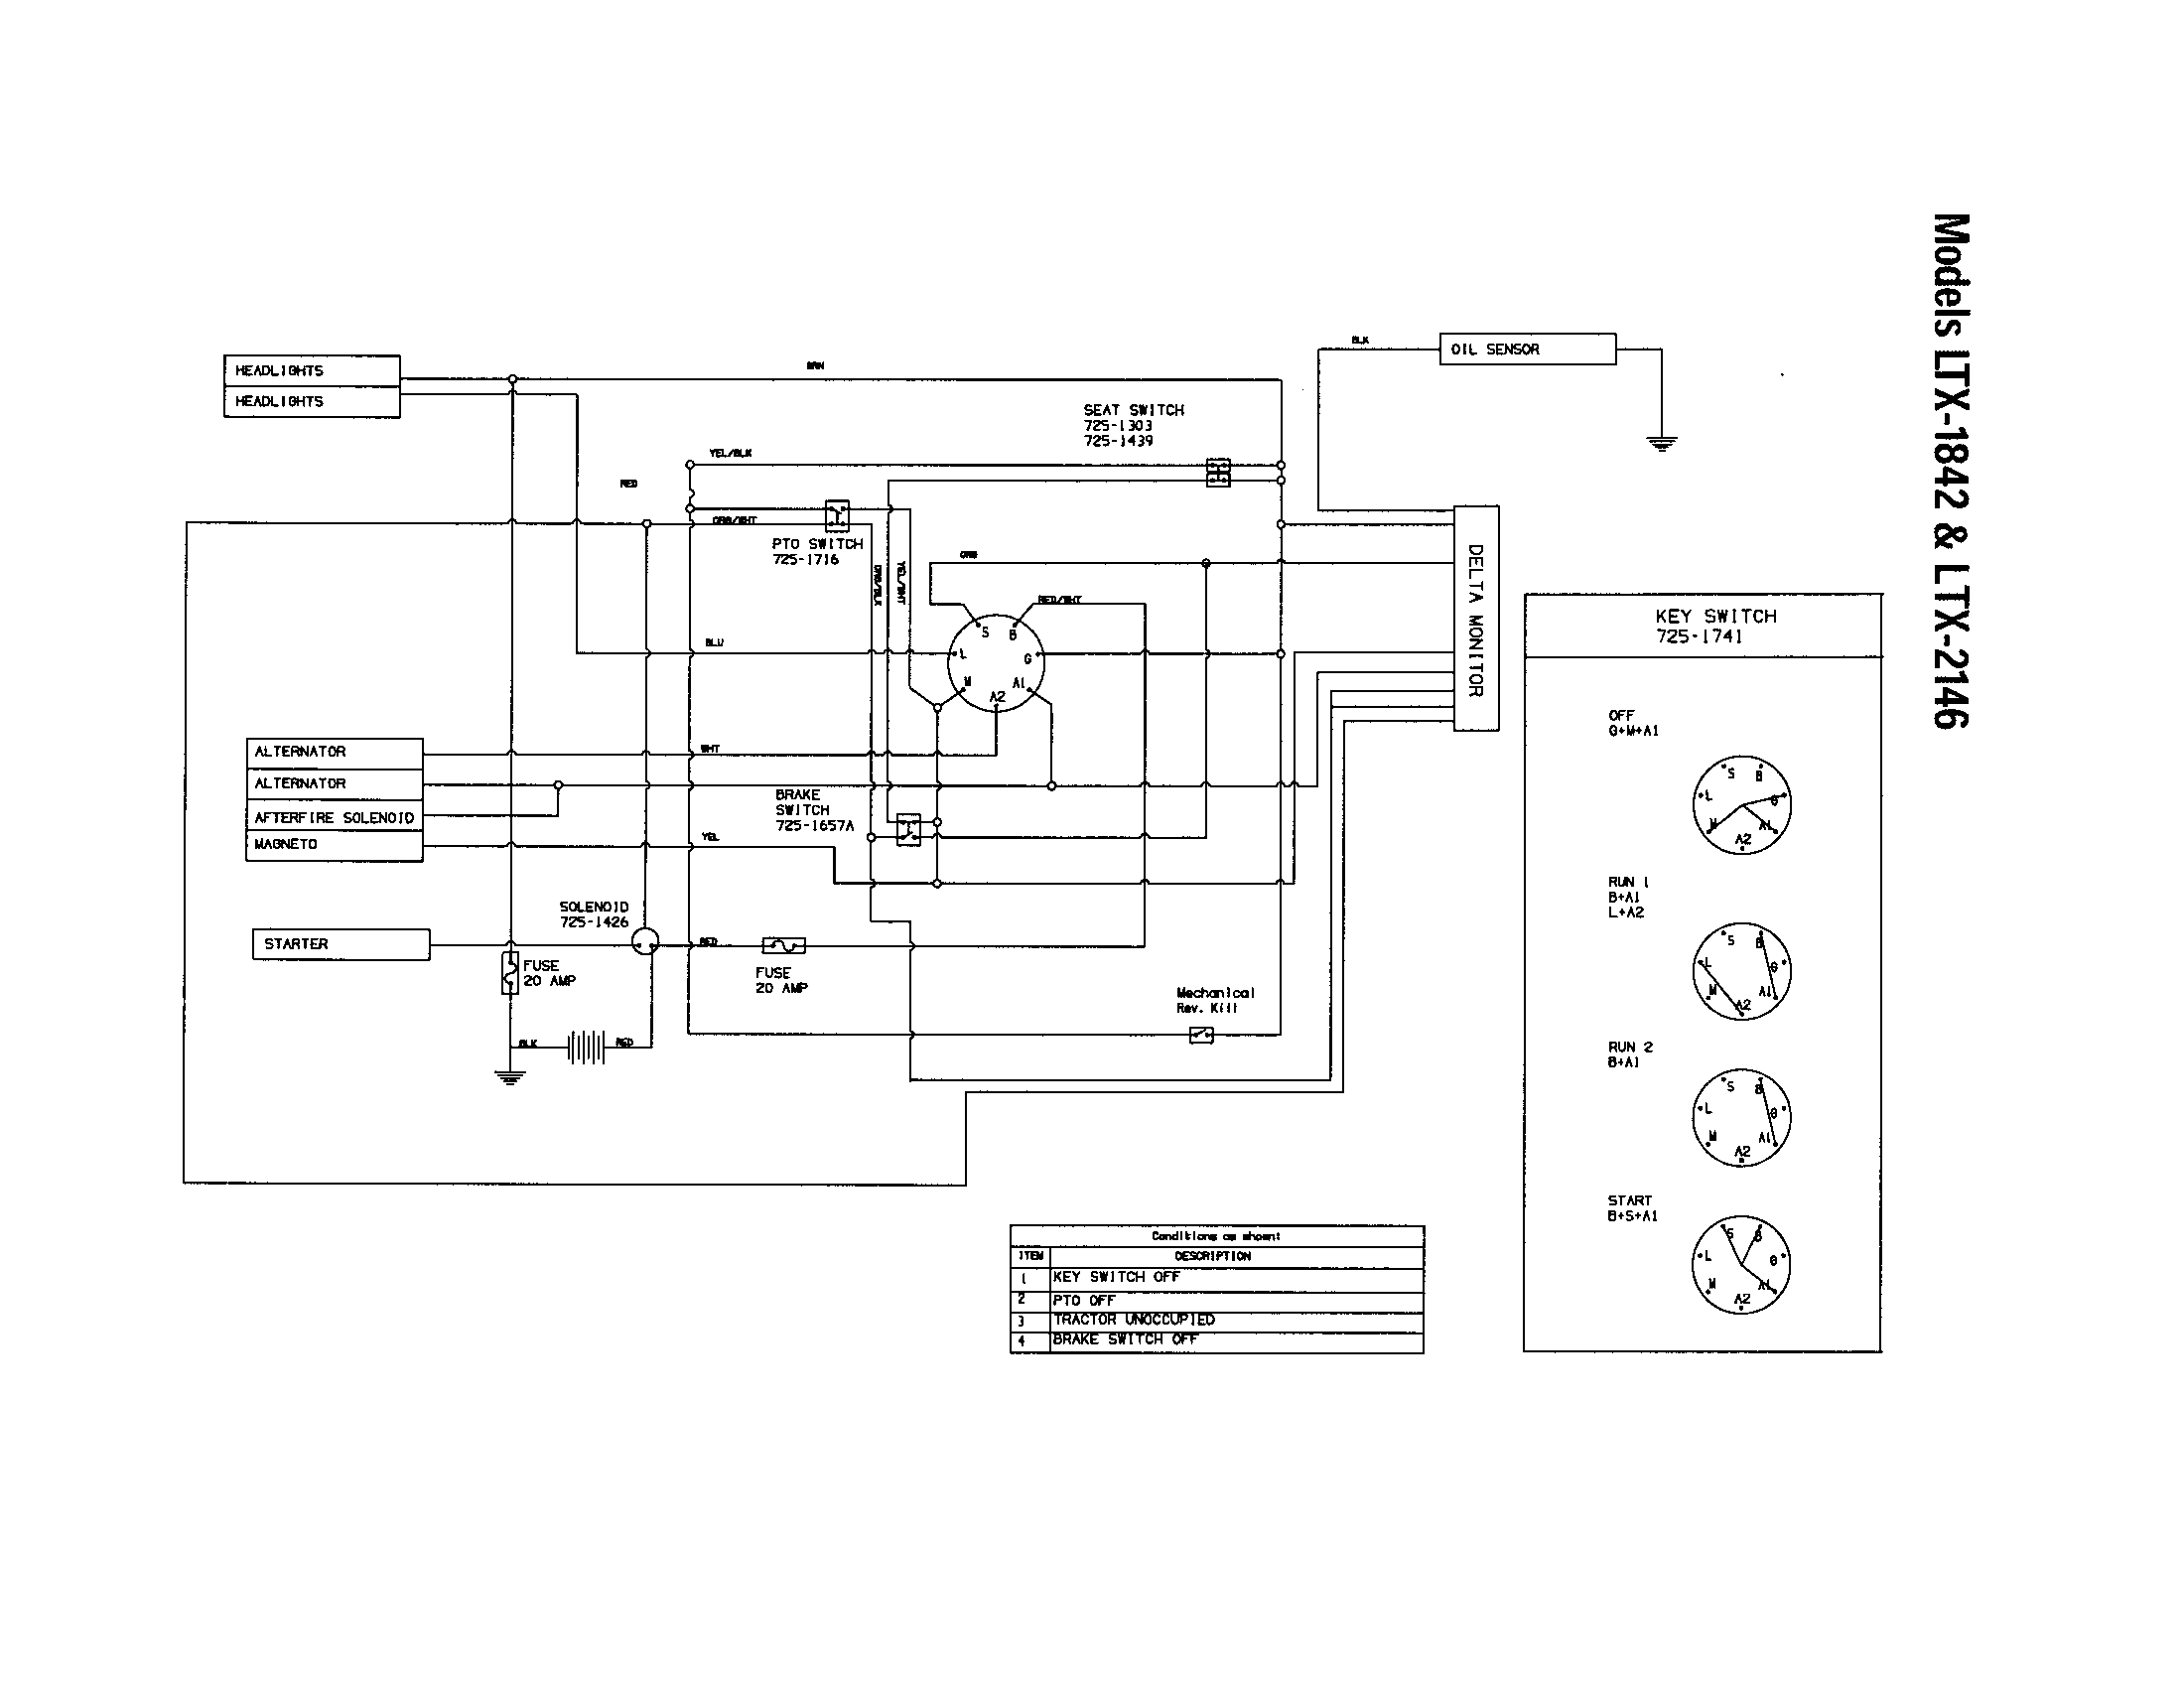 5f6fdf170ac50150de0653e8e97fb173 wiring diagram for tractor mower switch wiring wiring diagrams  at creativeand.co